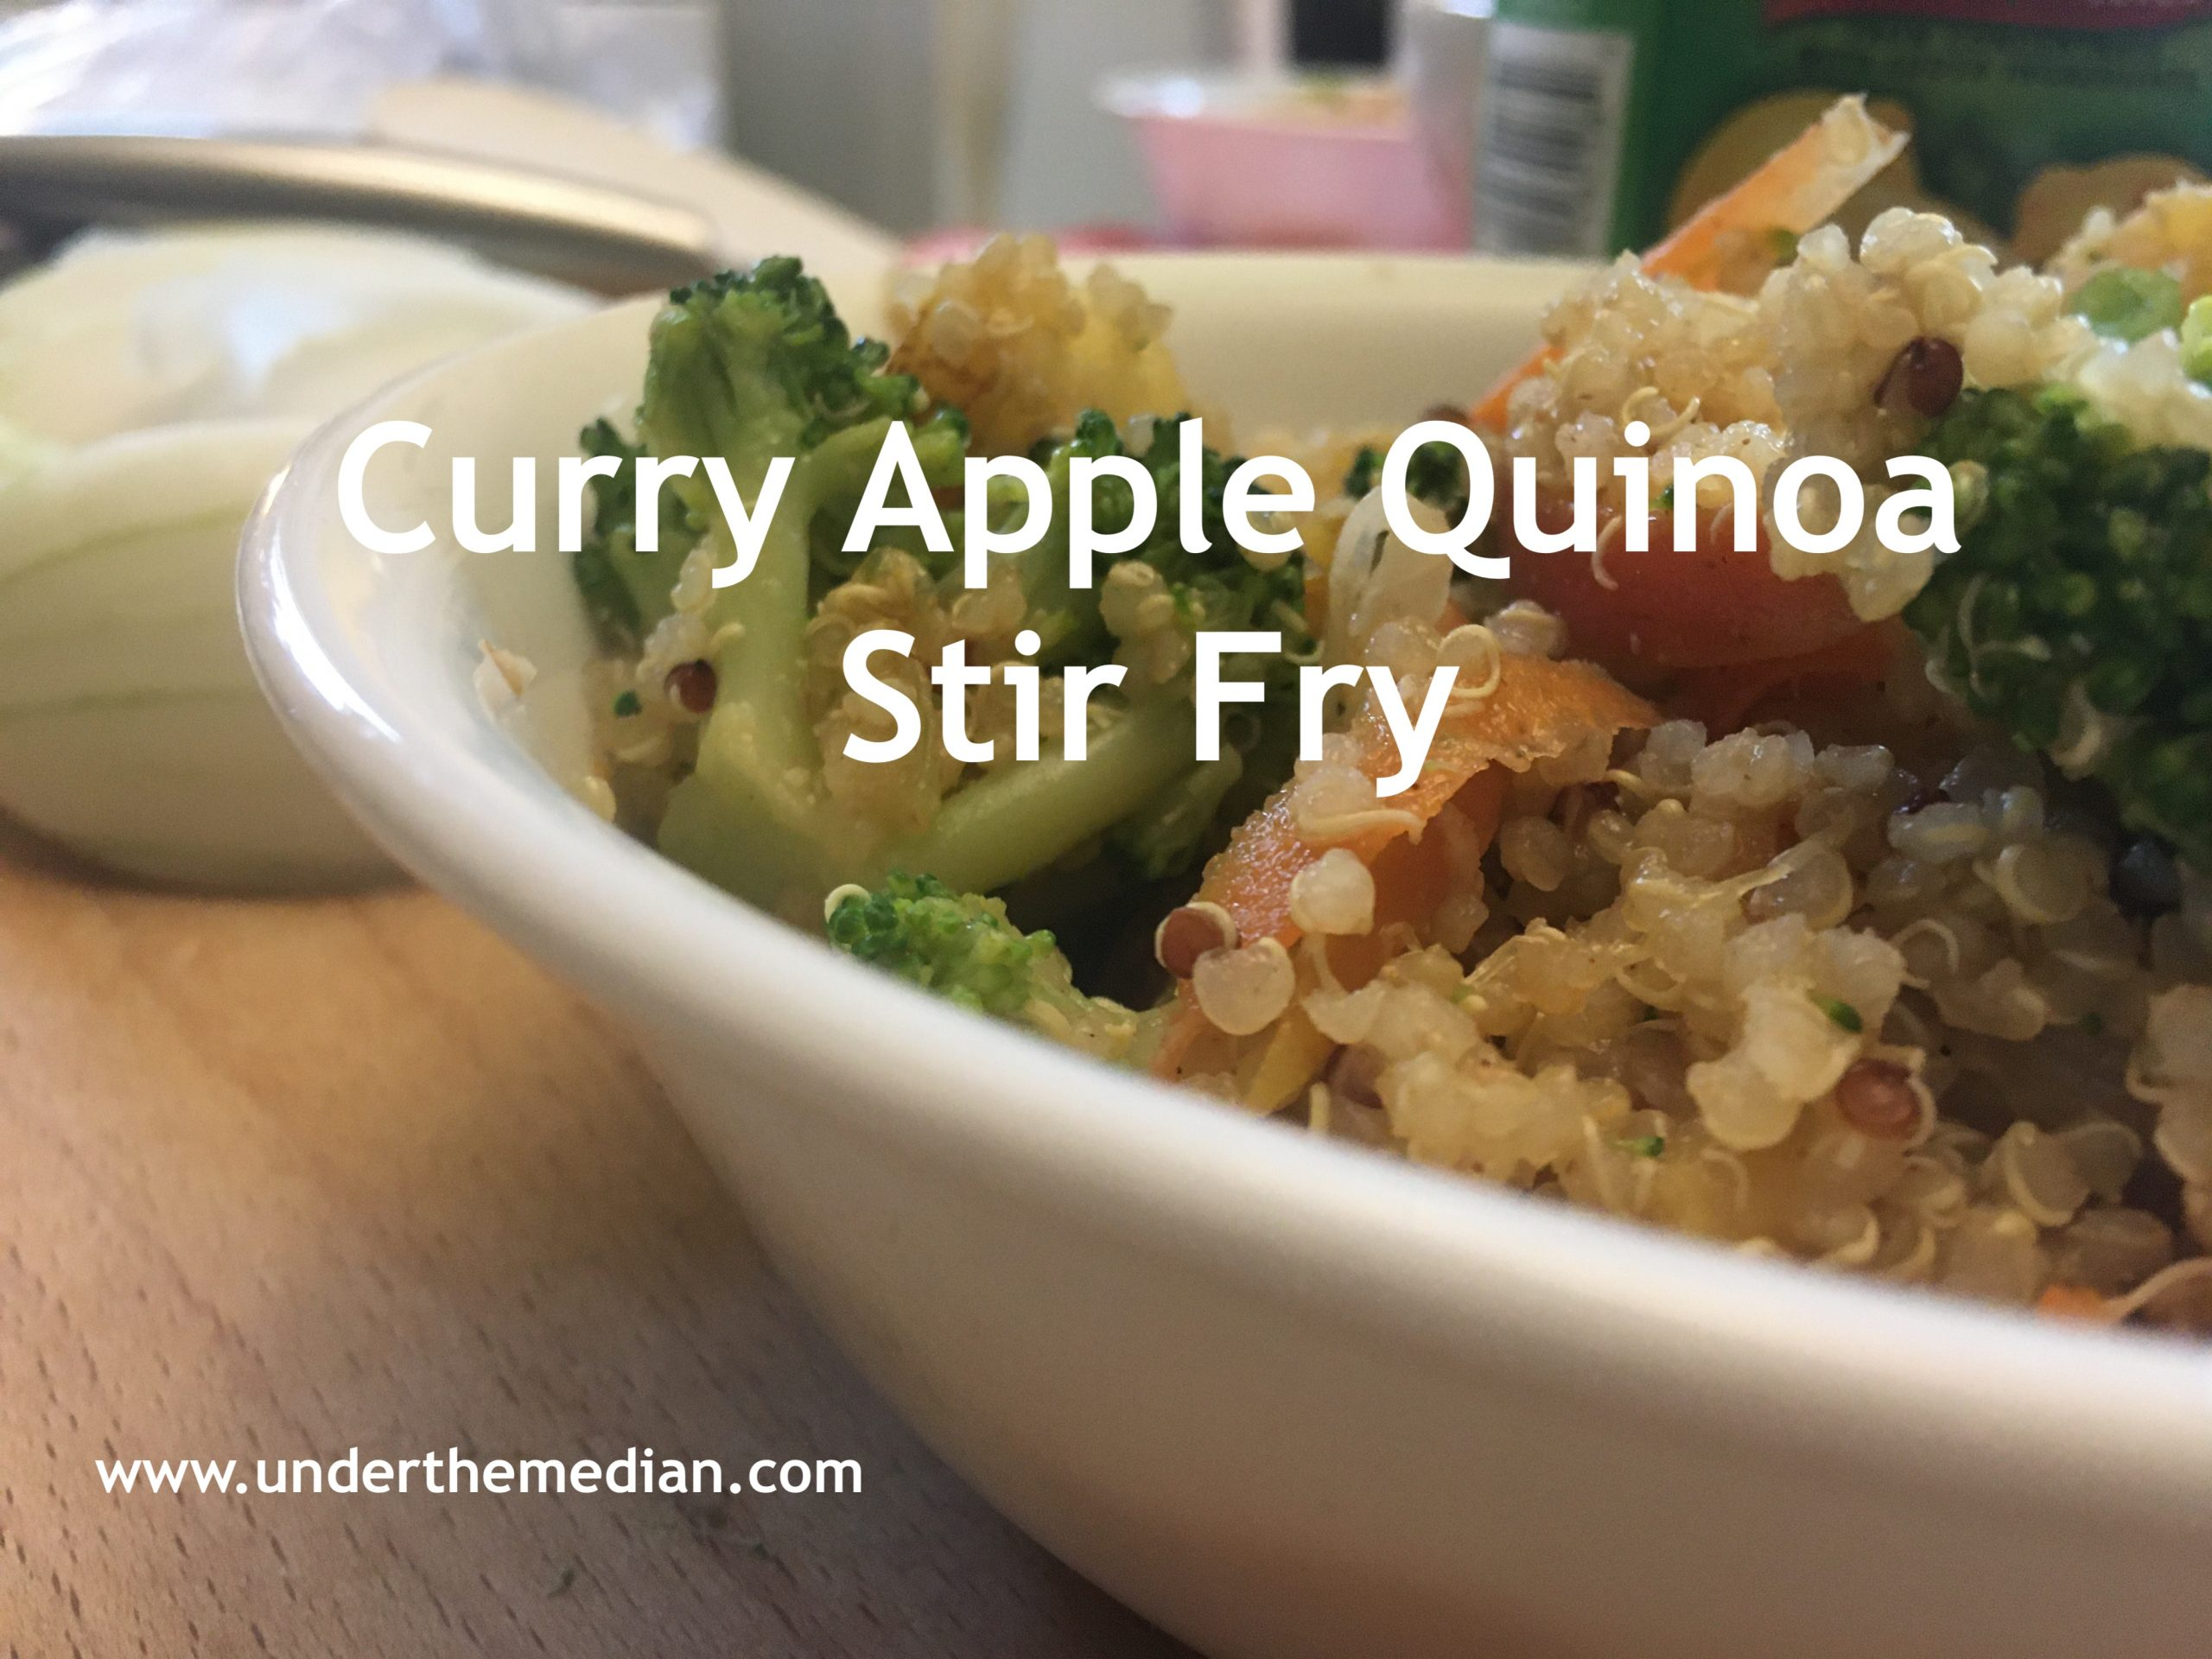 Curry Apple Quinoa Stir Fry